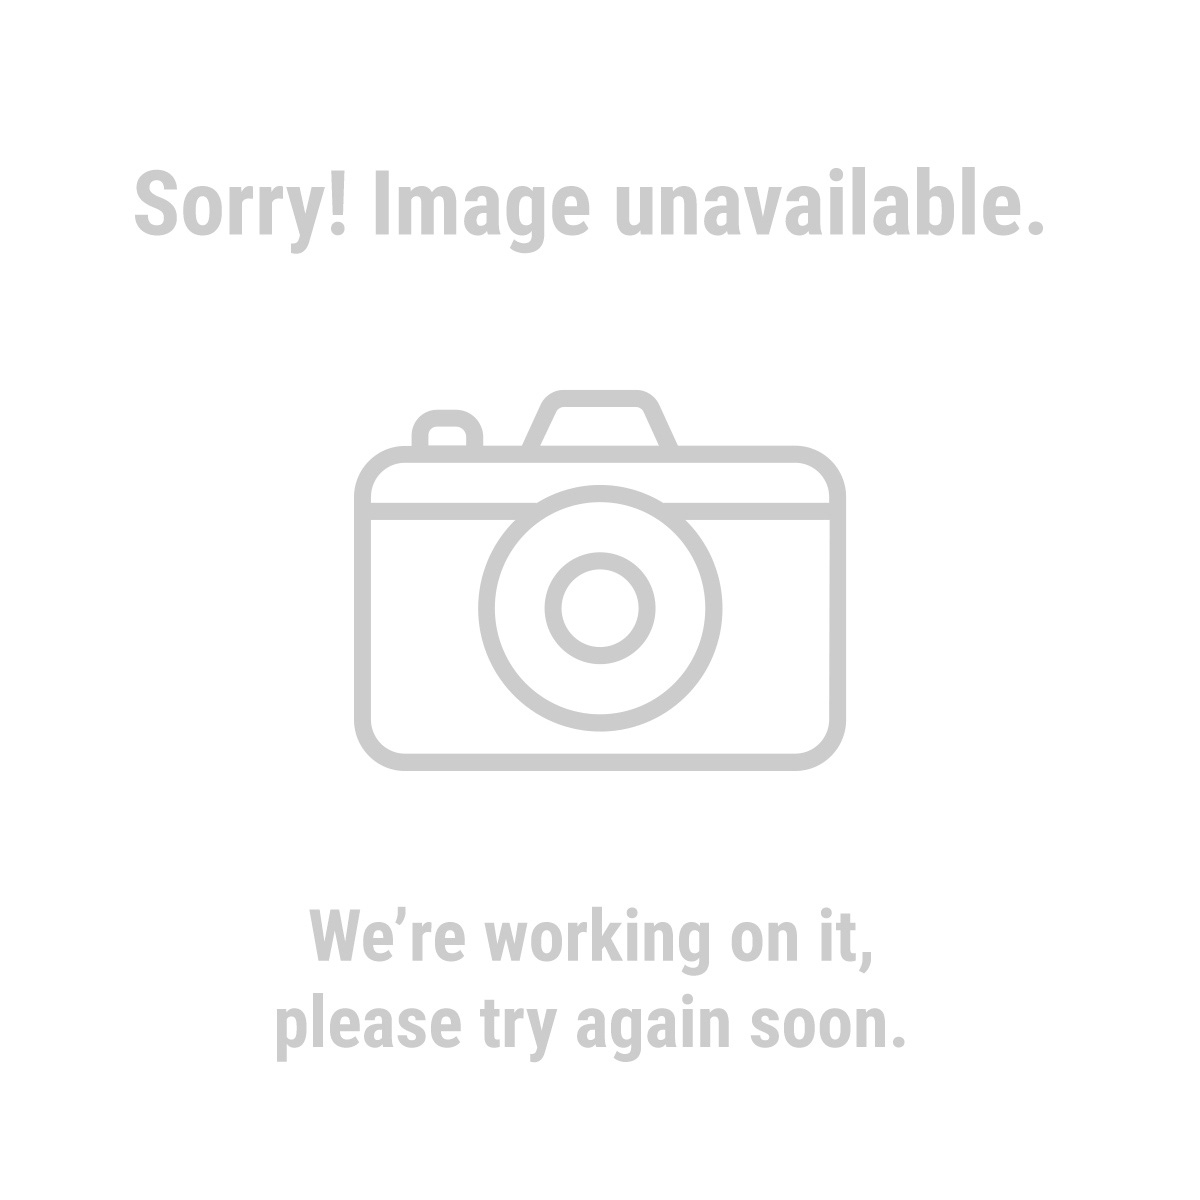 Chicago Electric Power Tools 62459 14 in. 3-1/2 HP Heavy Duty Cut-Off Saw